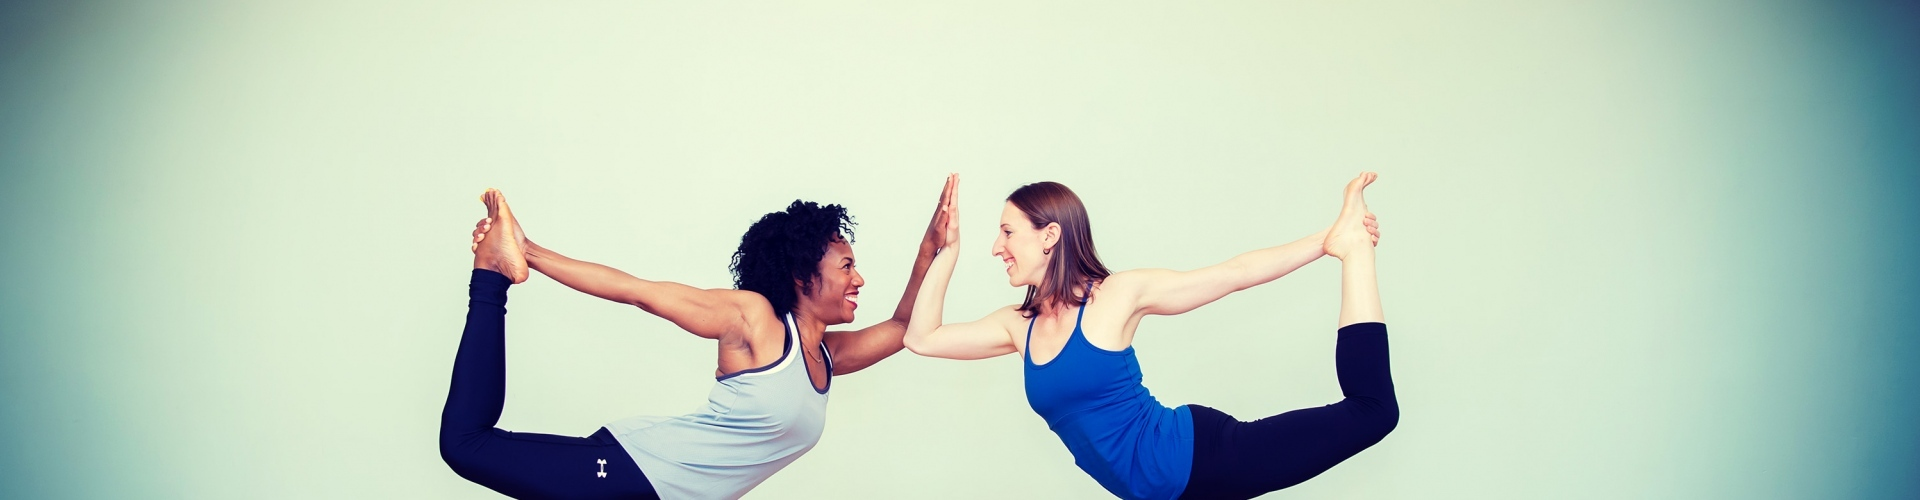 What are the benefits of doing yoga at home? 1